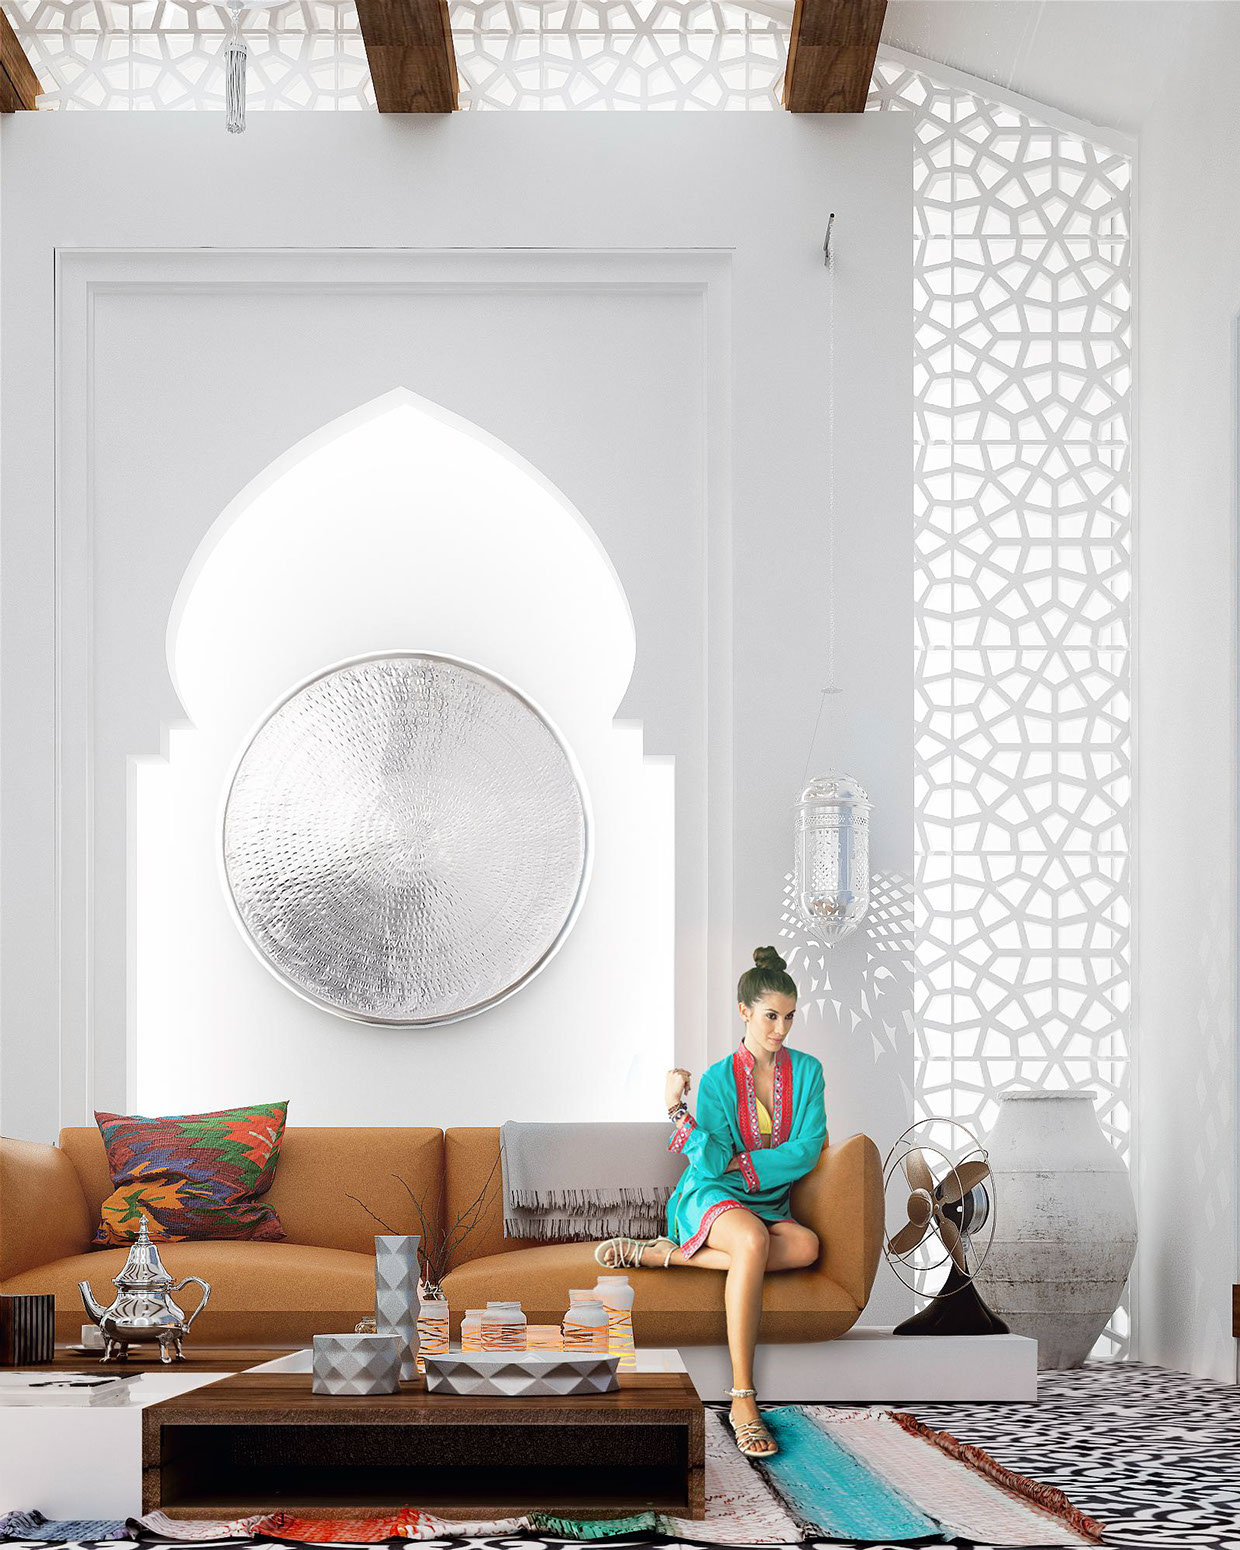 Moroccan style interior design for Moroccan living room decor ideas